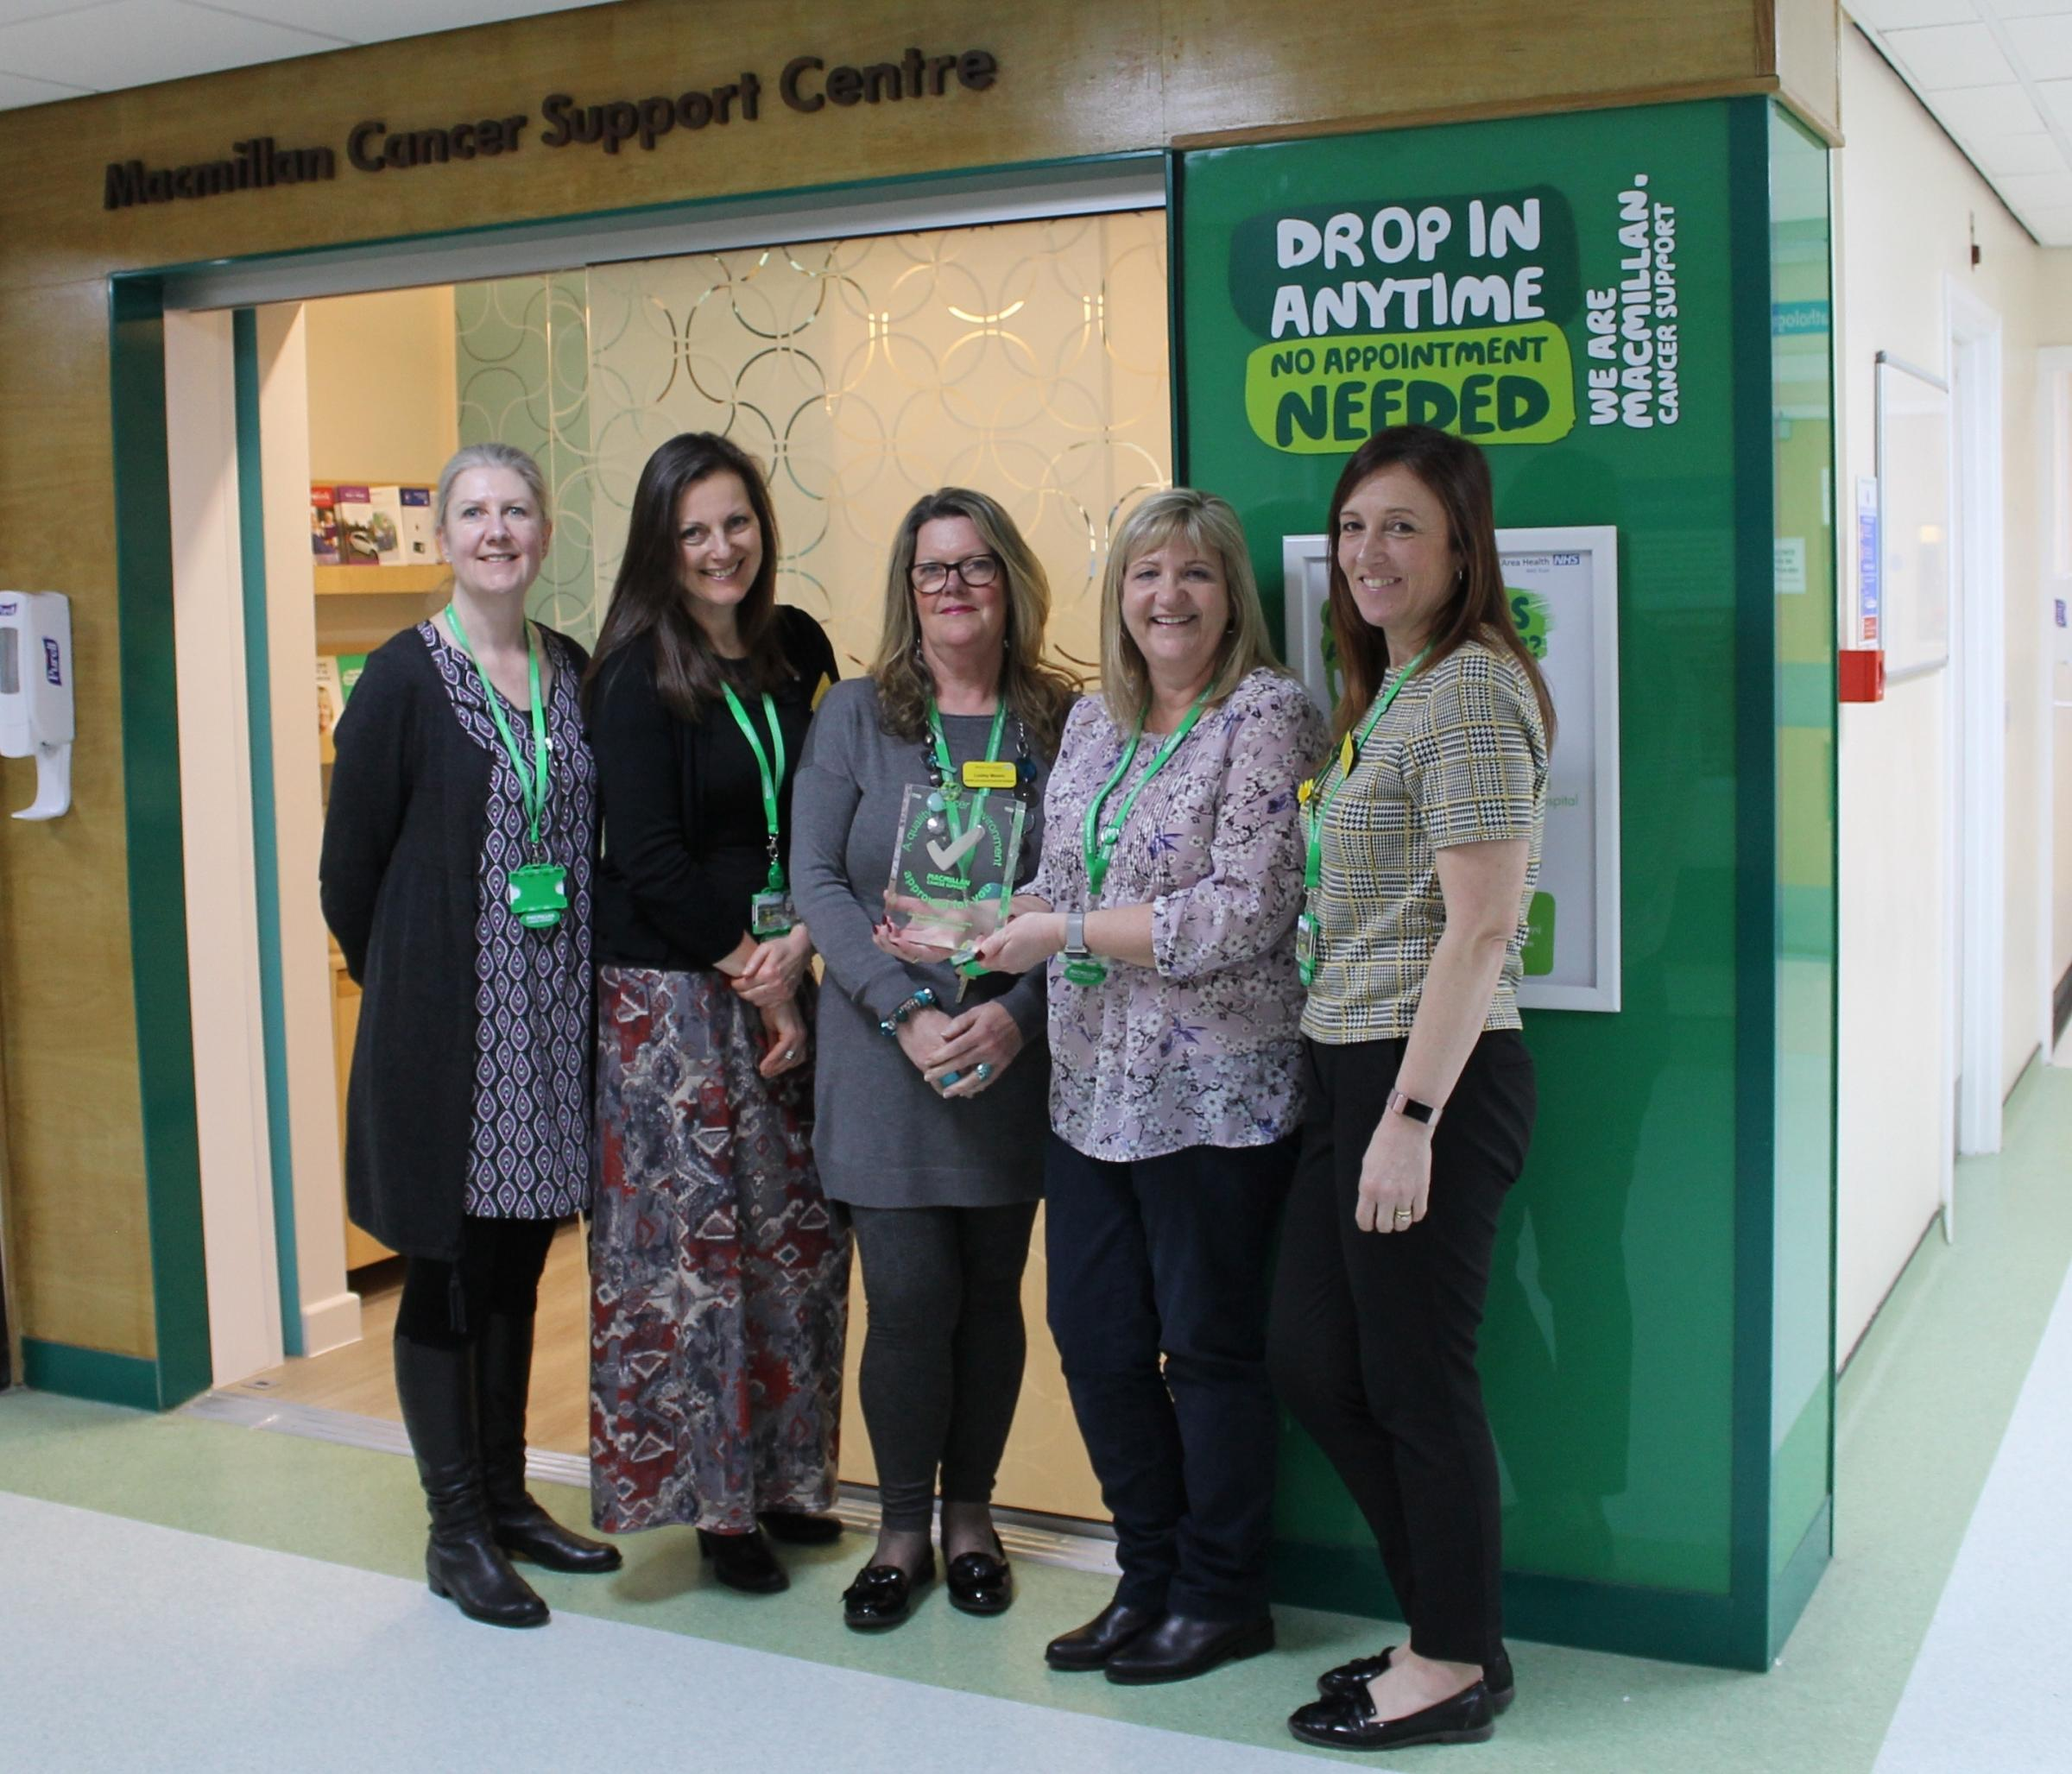 31222c48c9188 Weston Area Health NHS Trust (WAHT) Macmillan Cancer Support Centre wins top  marks for quality